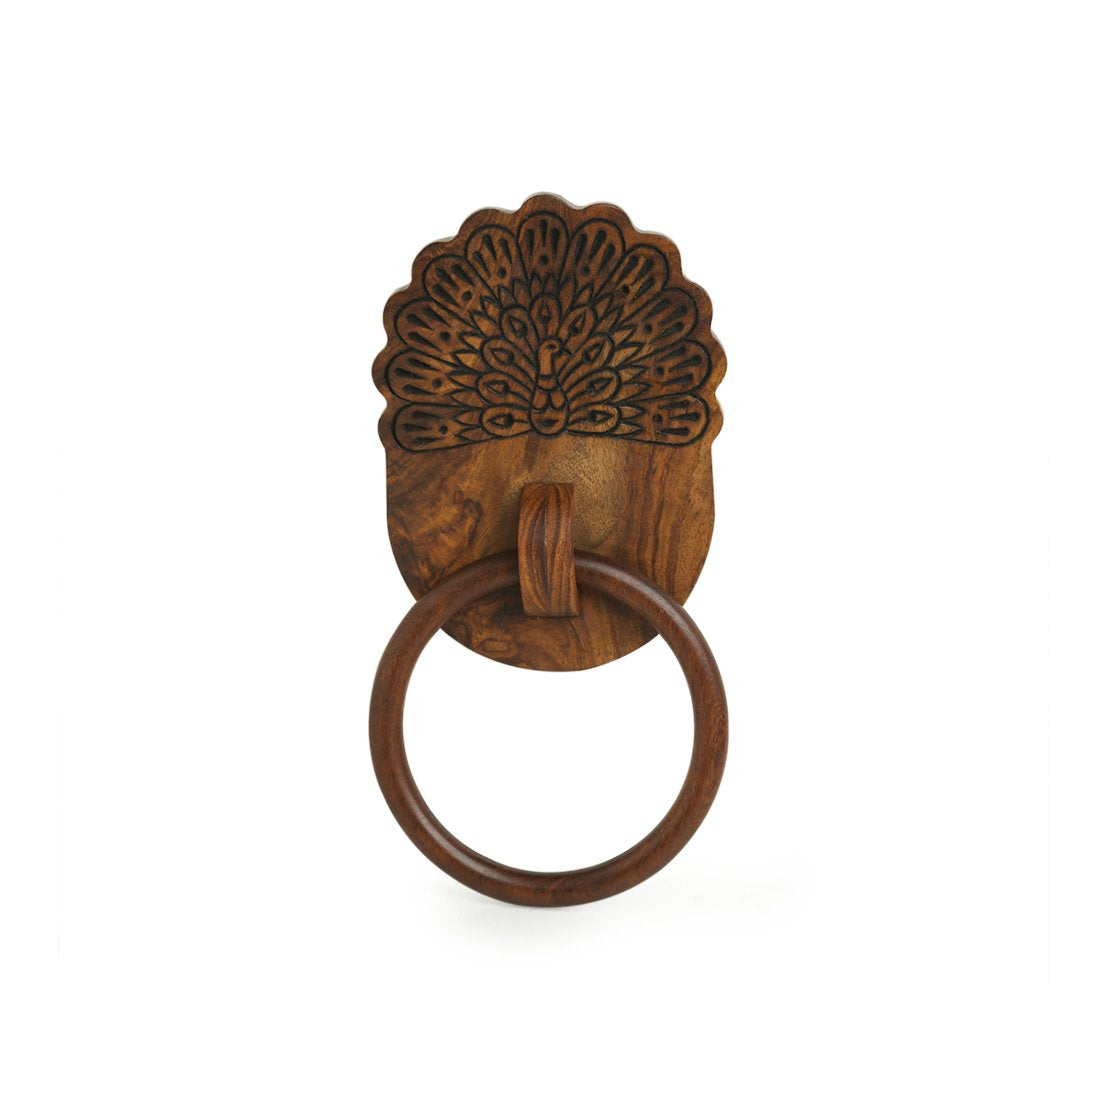 'The Dancing Peacock' Hand Carved Towel Ring Holder in Sheesham Wood